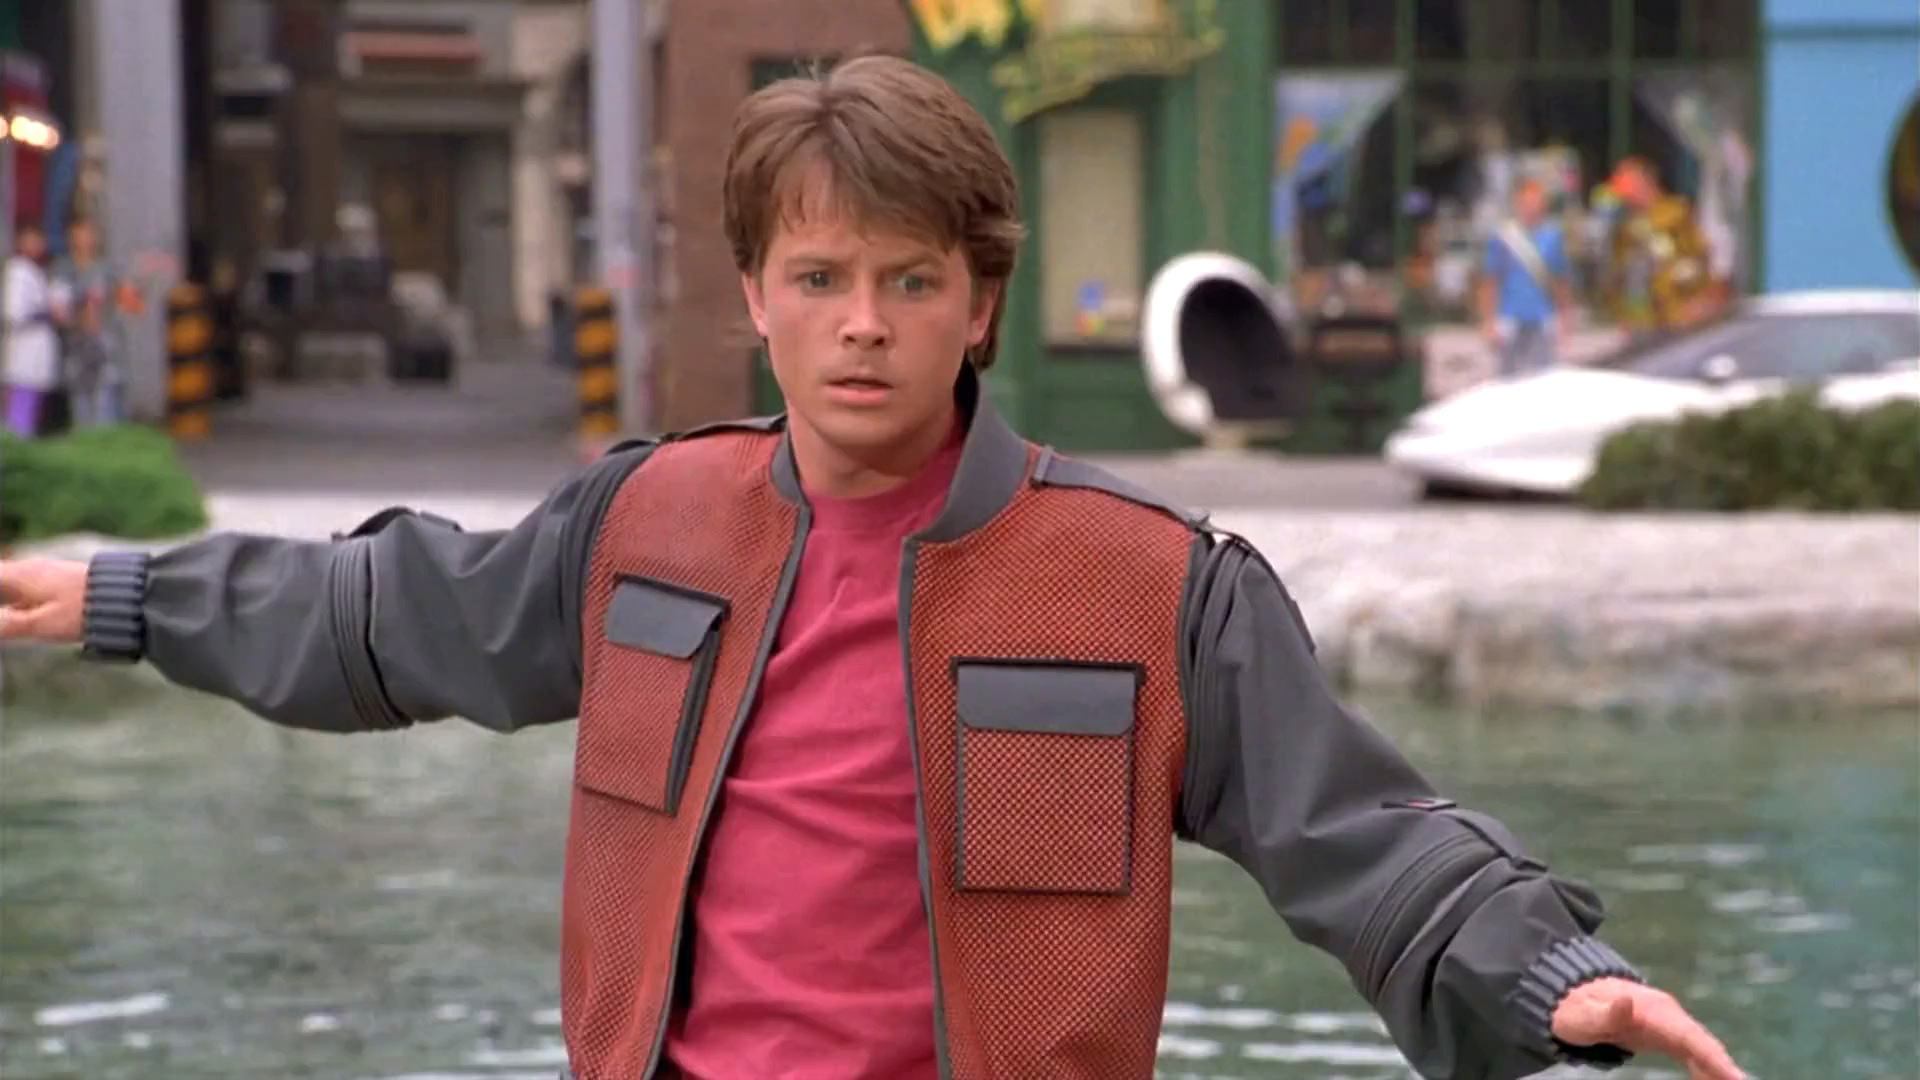 film-back_to_the_future_2-1989-marty_mcfly-michael_j_fox-jackets-jacket